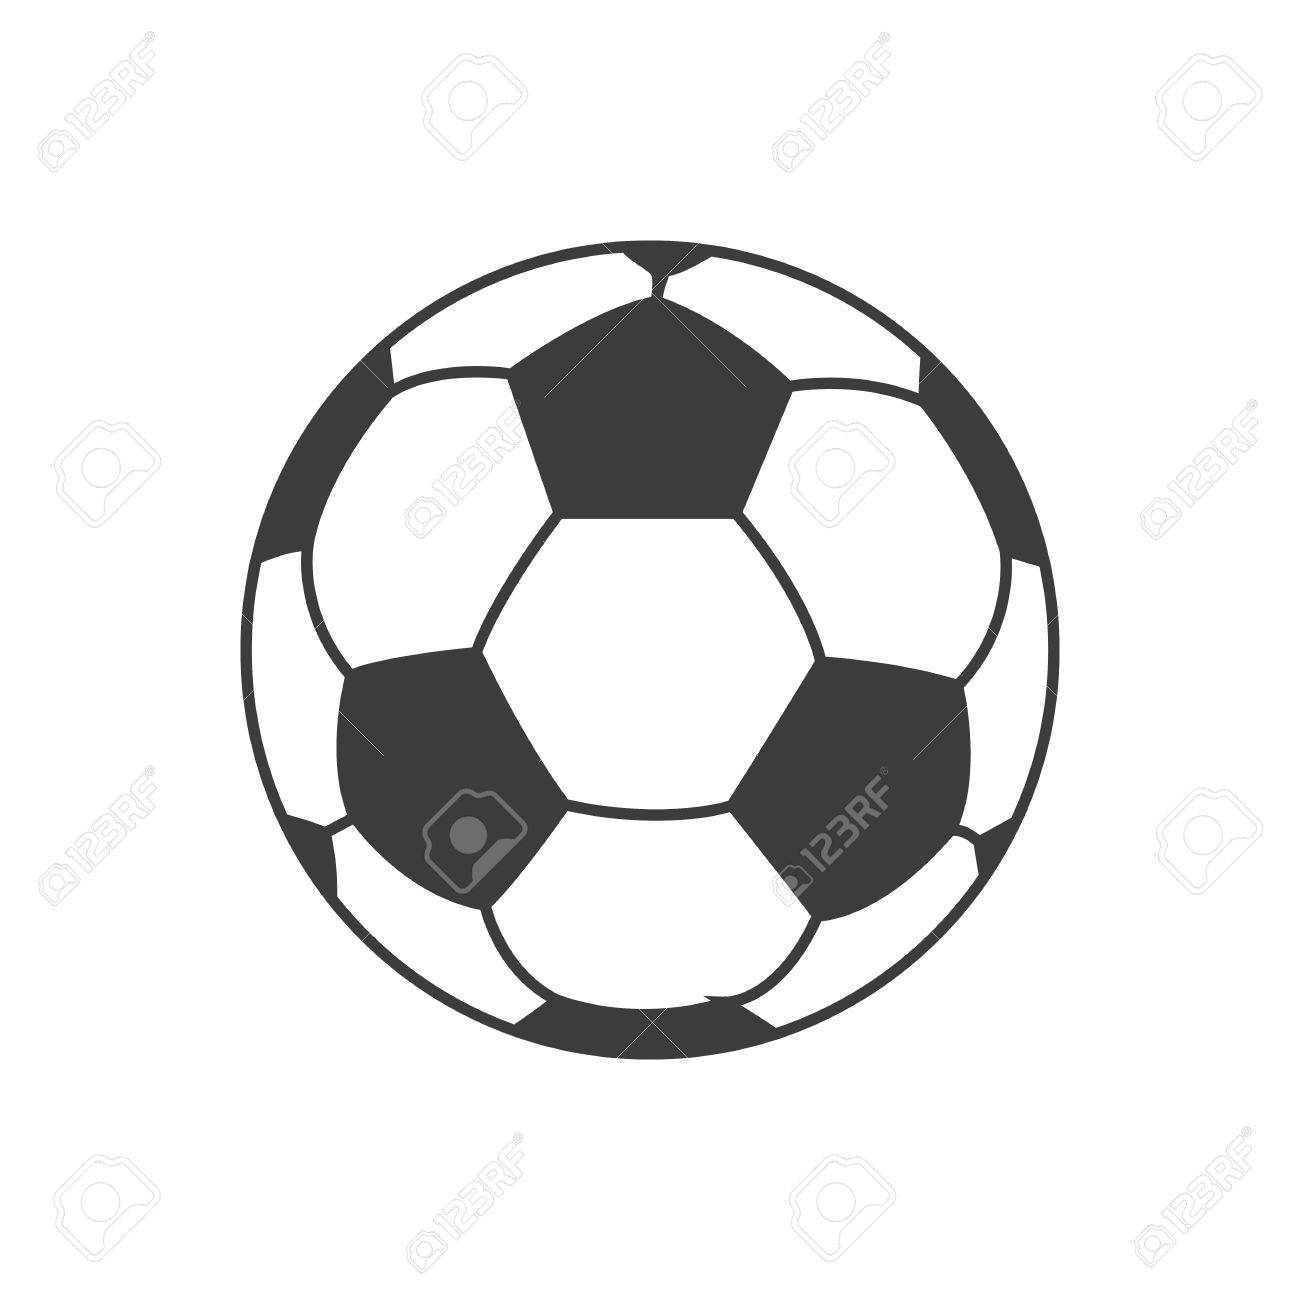 Soccer ball icon. Soccer ball Vector isolated on white background. - 60582671